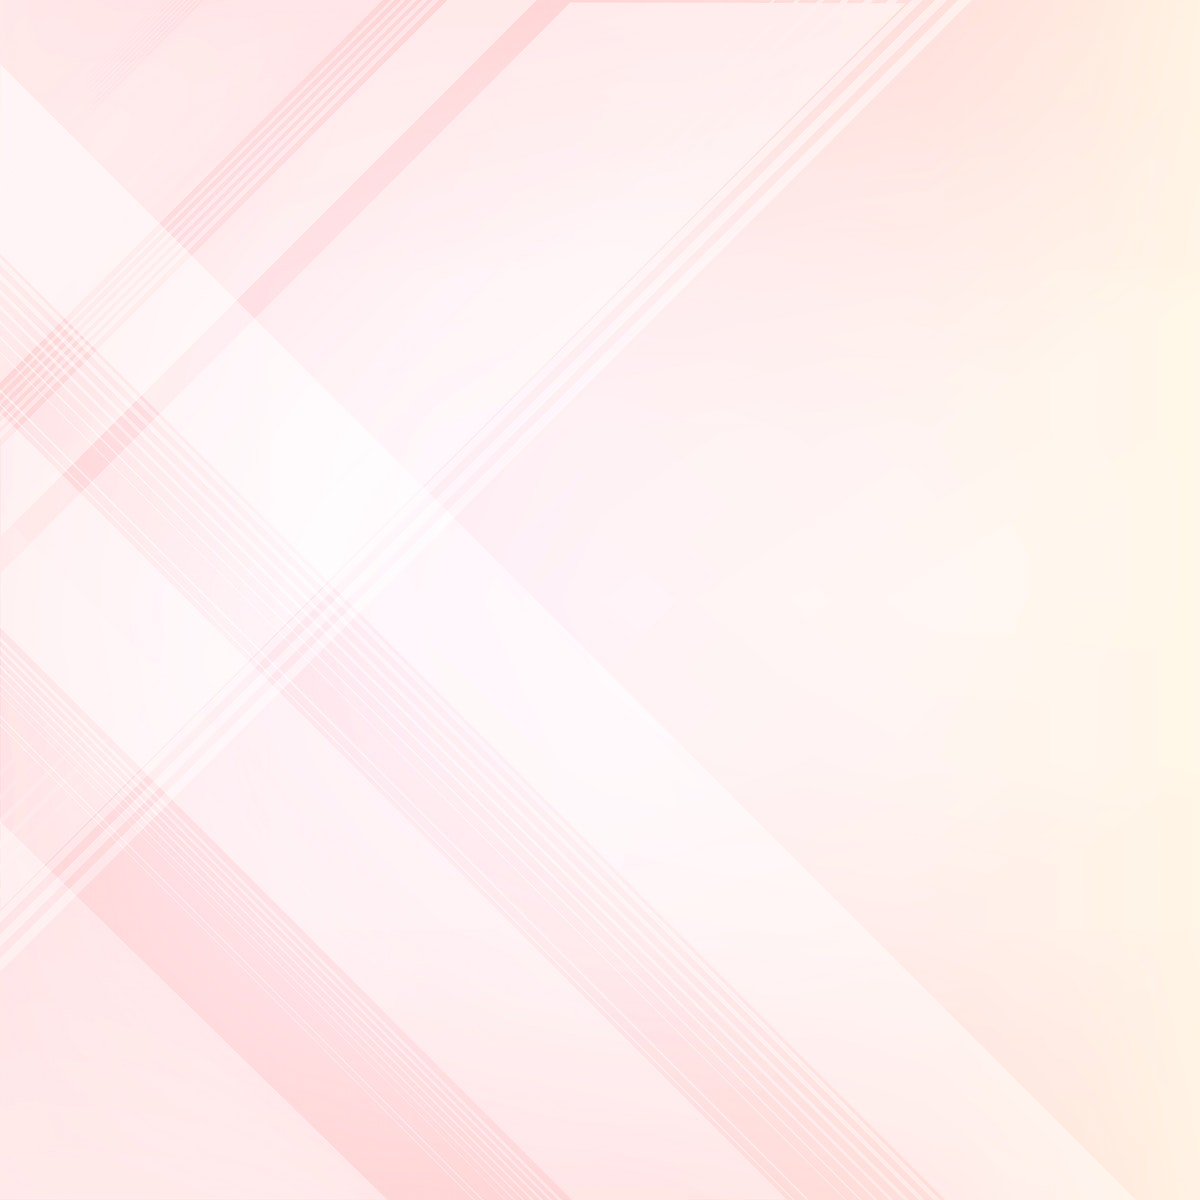 Red and pink gradient abstract background